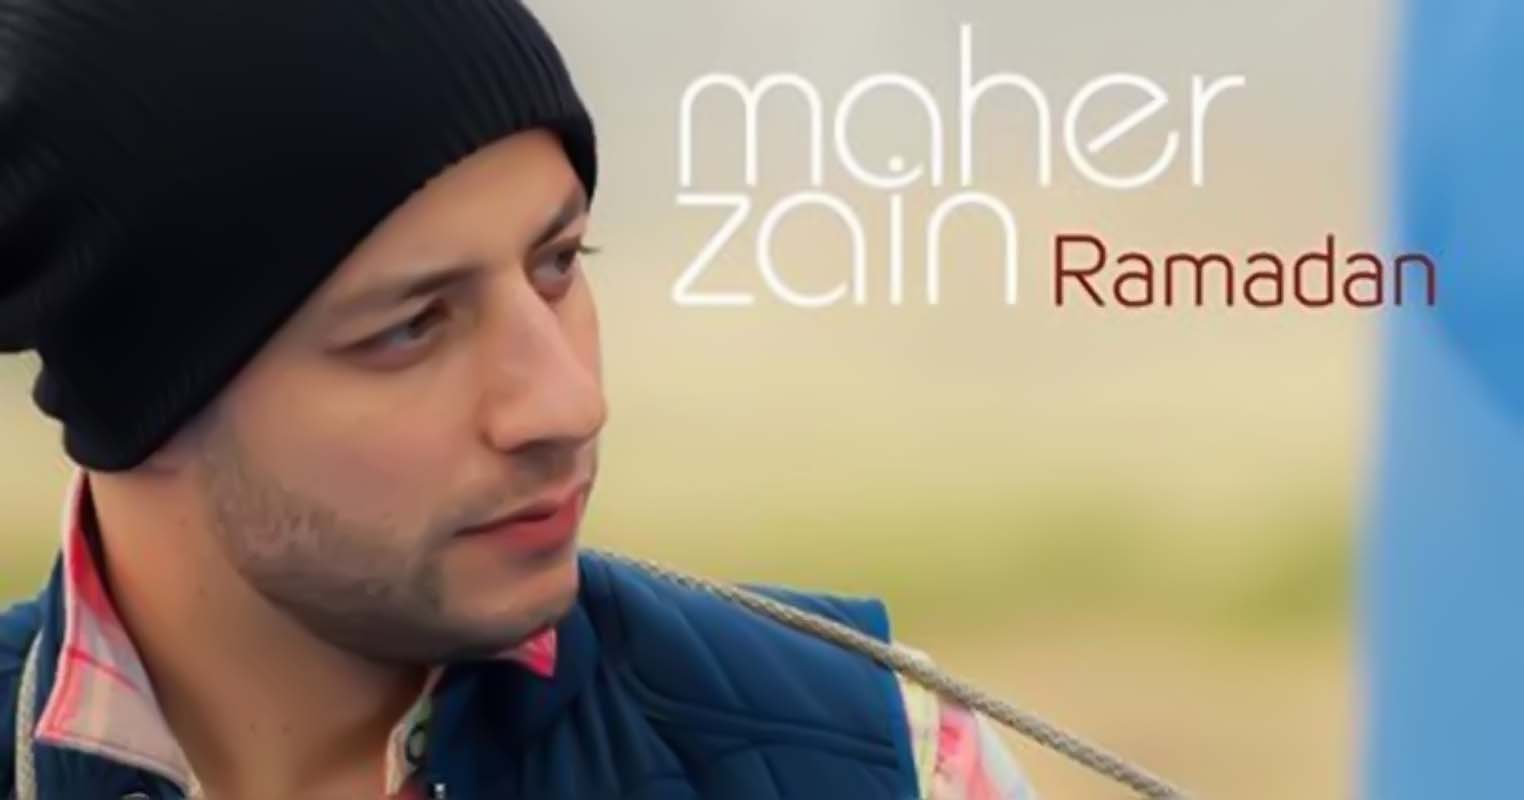 Maher Zain - Ramadan [English, Bahasa, Live & Acoustic - New 2018]